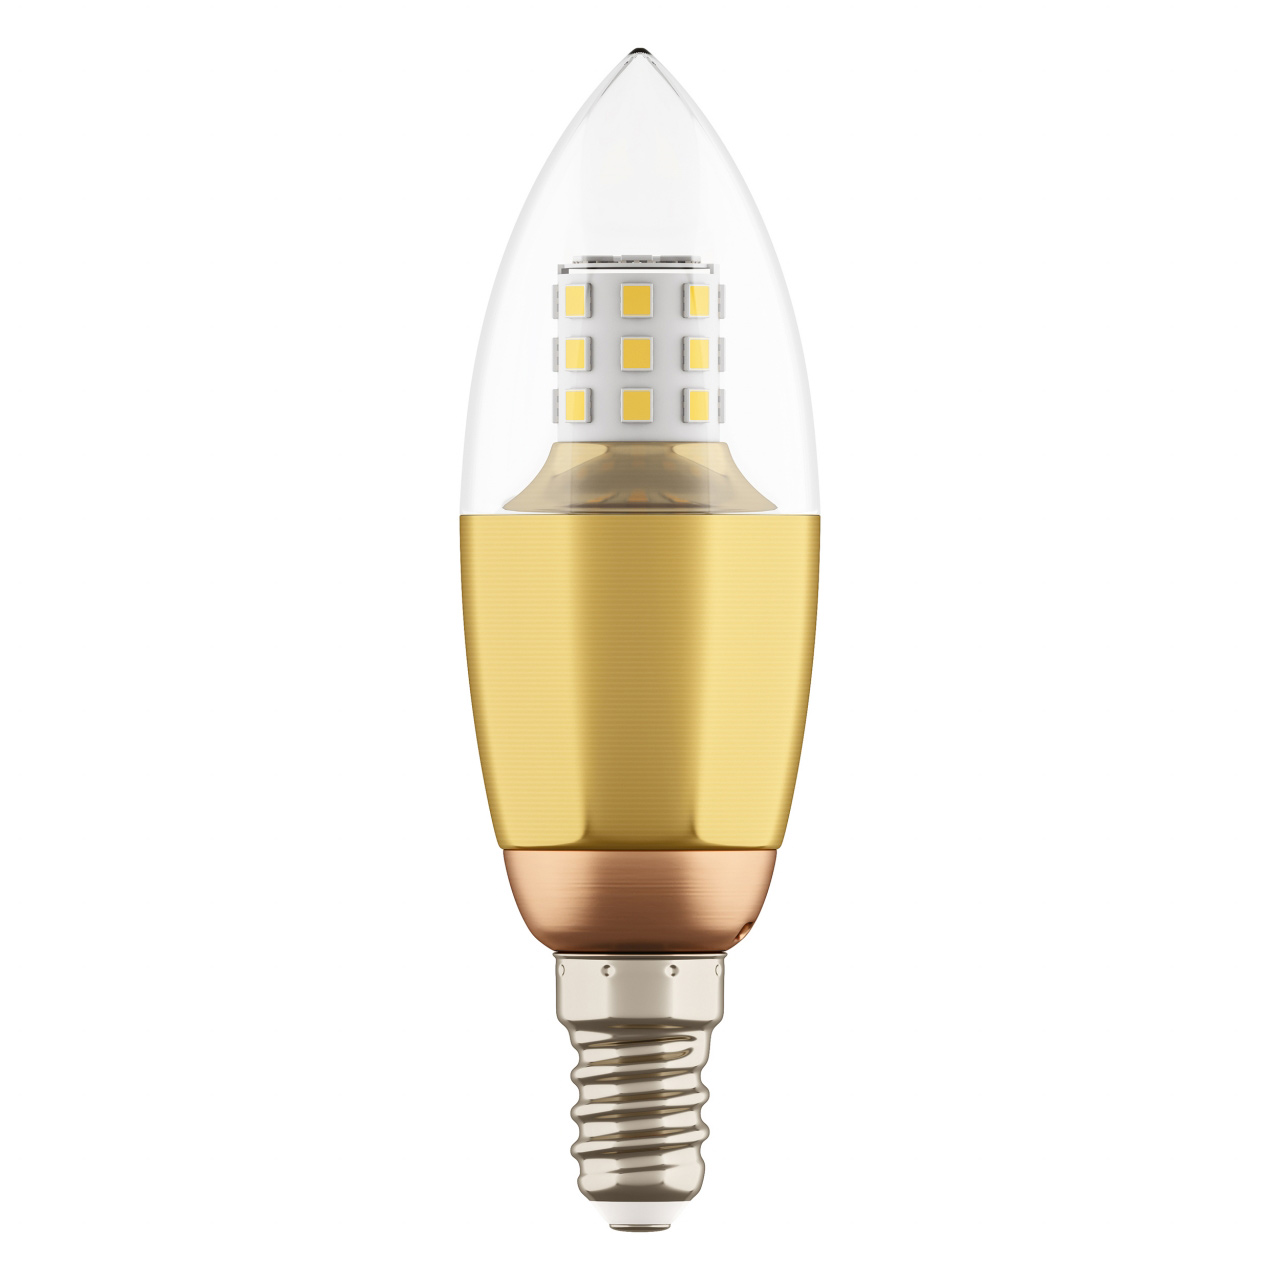 Лампа LED 220V C35 E14 7W=70W 460LM 60G CL/GD 3000K 20000H Lightstar 940522